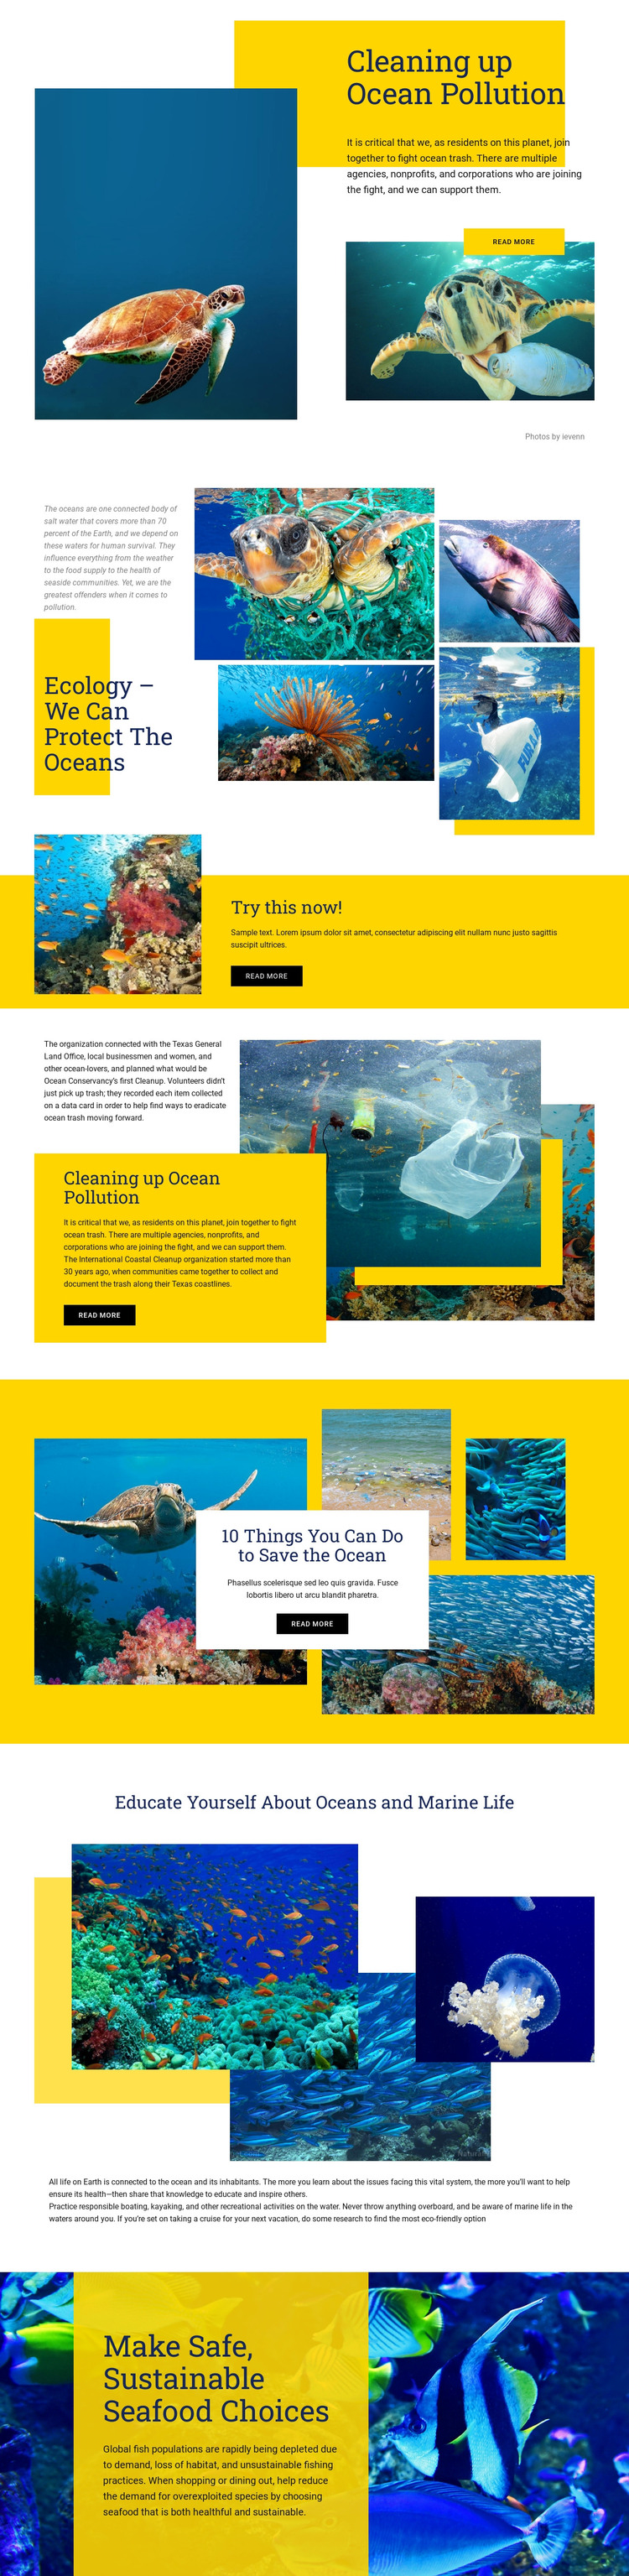 Protect The Oceans WordPress Theme